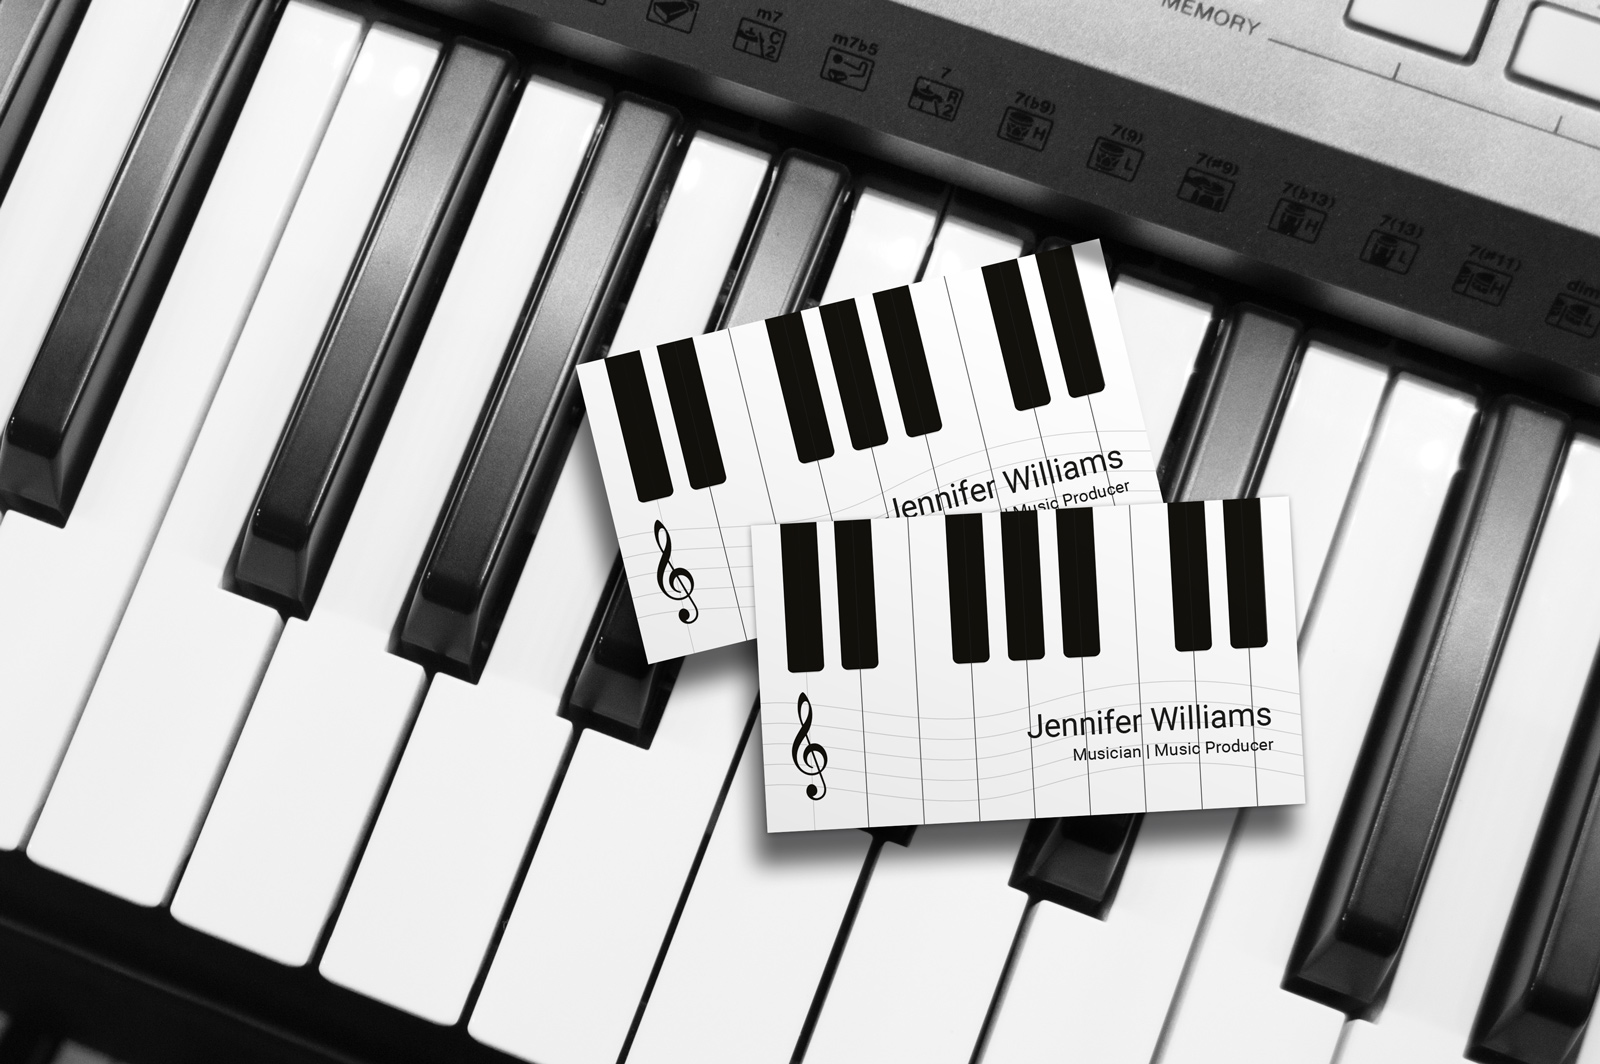 Music business cards business card tips music business cards flashek Images